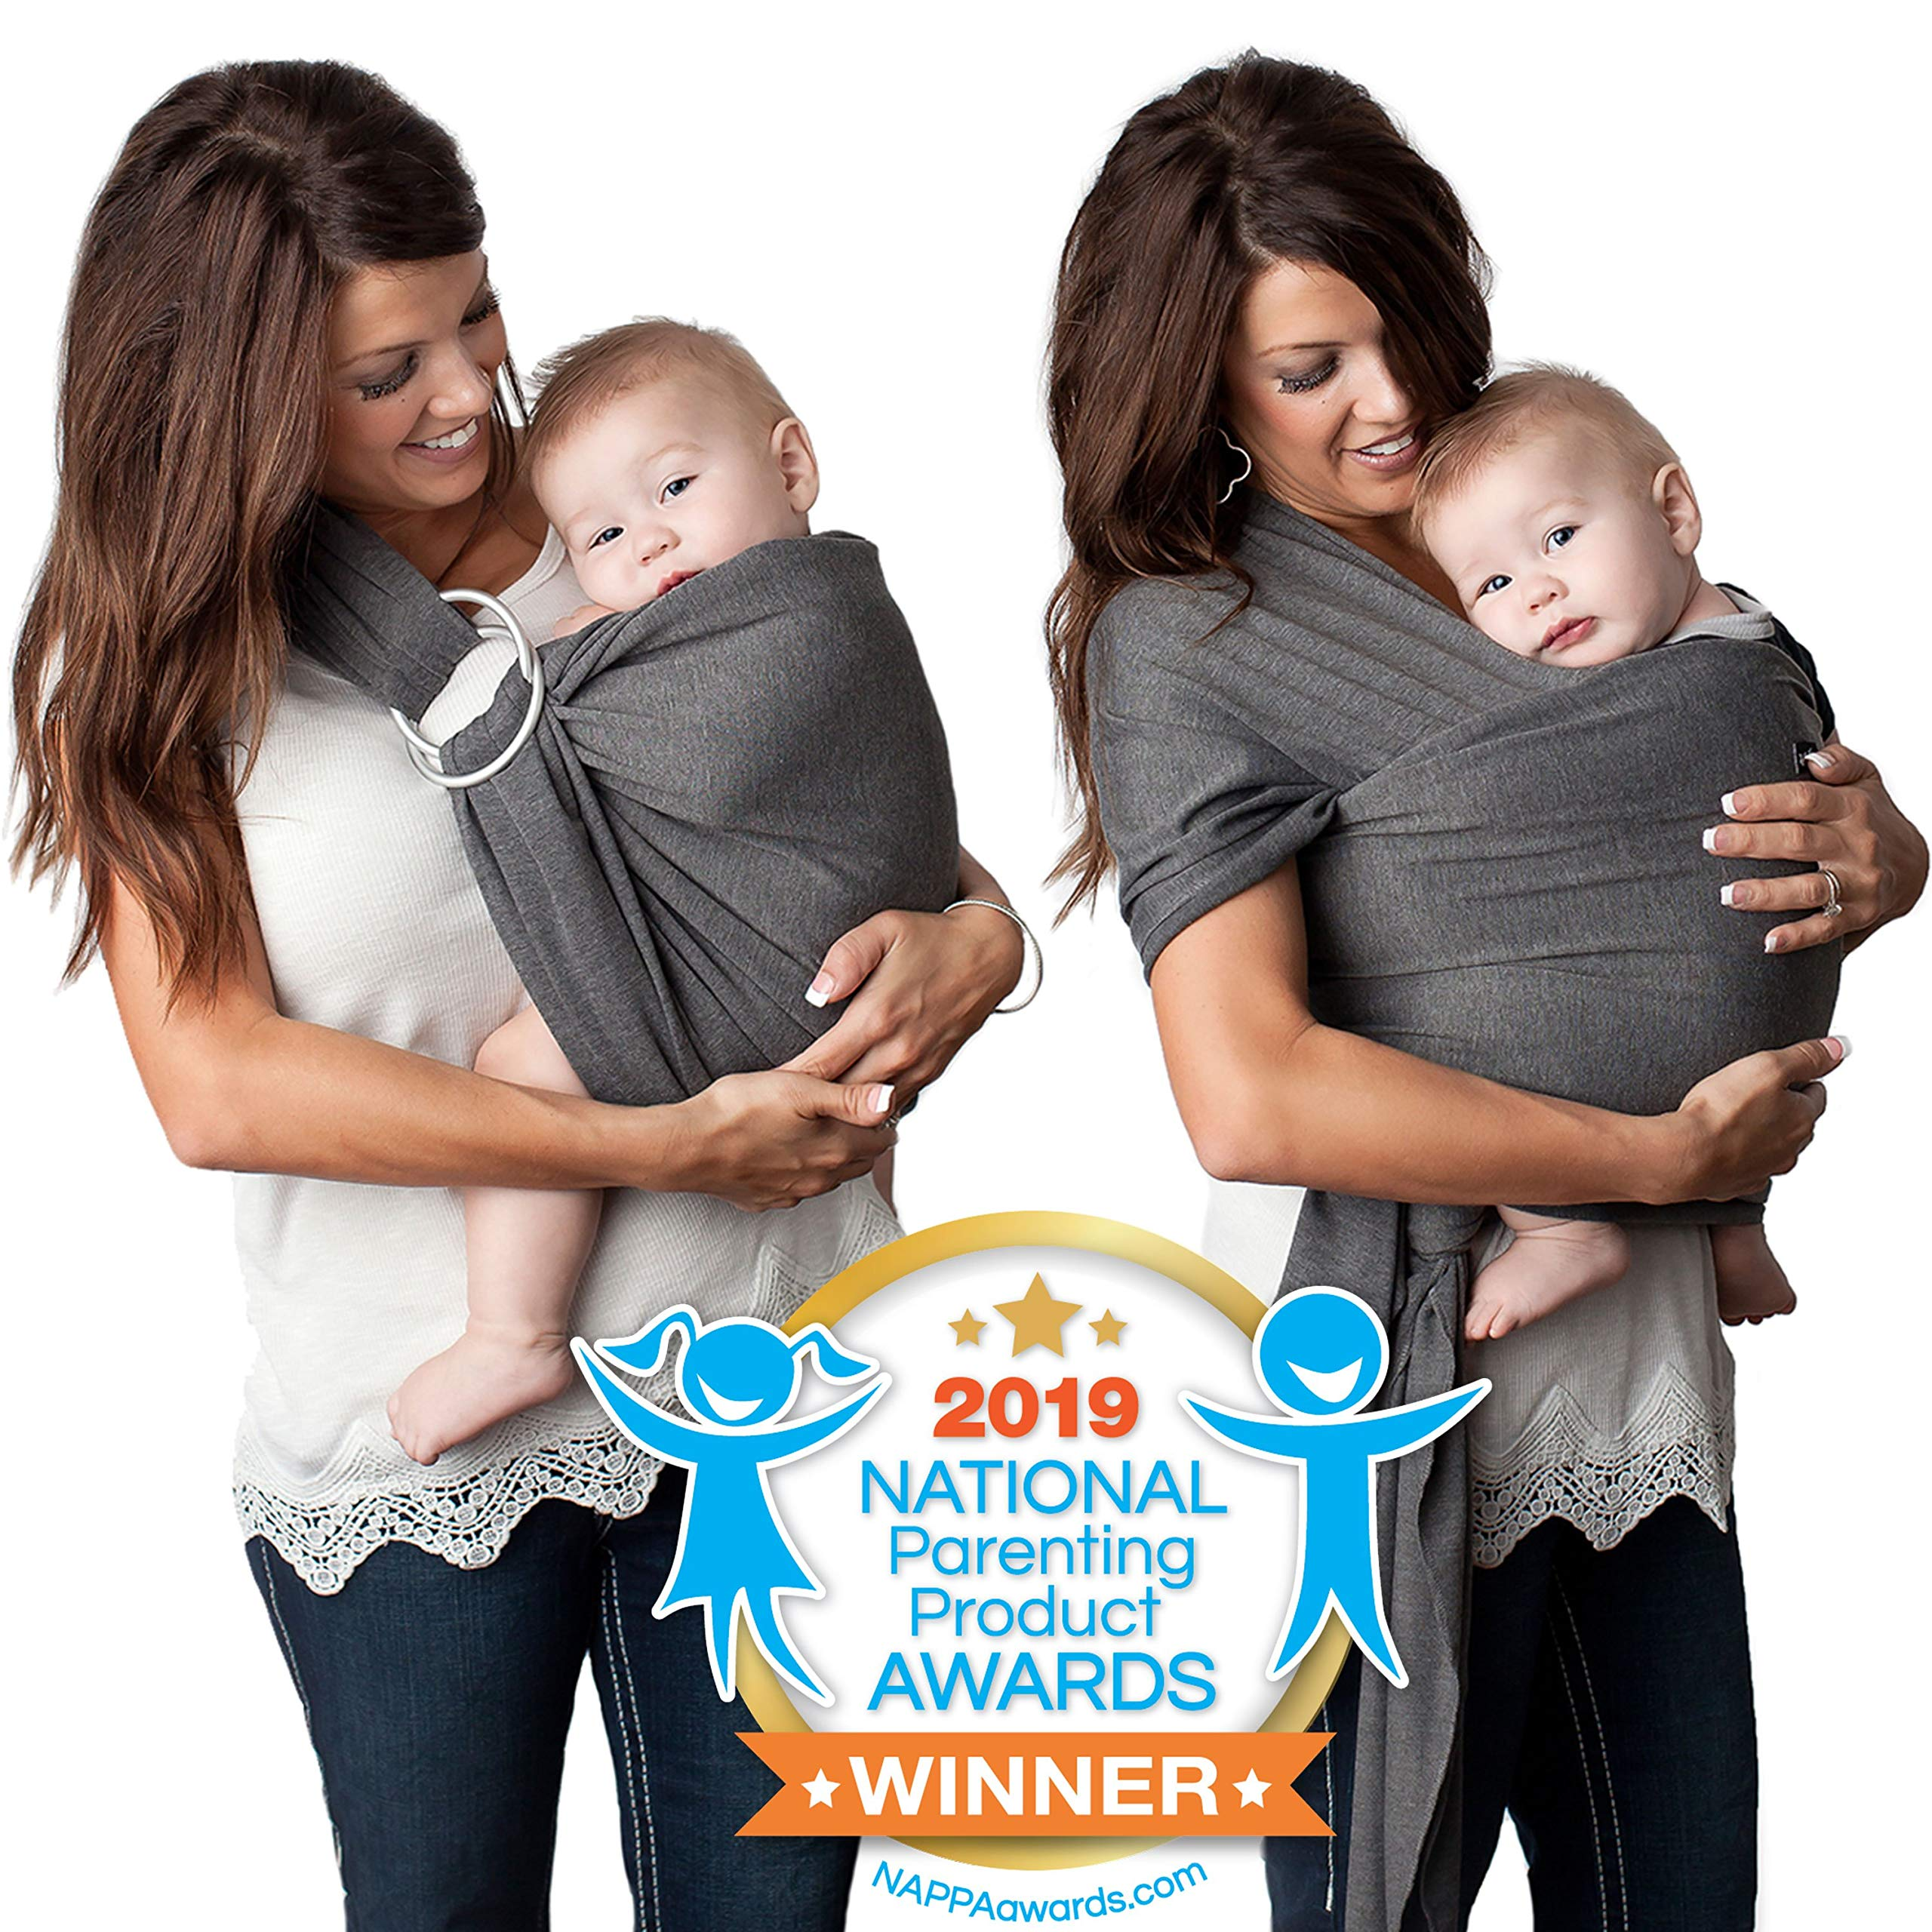 4 in 1 Baby Wrap Carrier and Ring Sling by Kids N' Such   Charcoal Gray Cotton   Use as a Postpartum Belt and Nursing Cover with Free Carrying Pouch   Best Baby Shower Gift for Boys or Girls